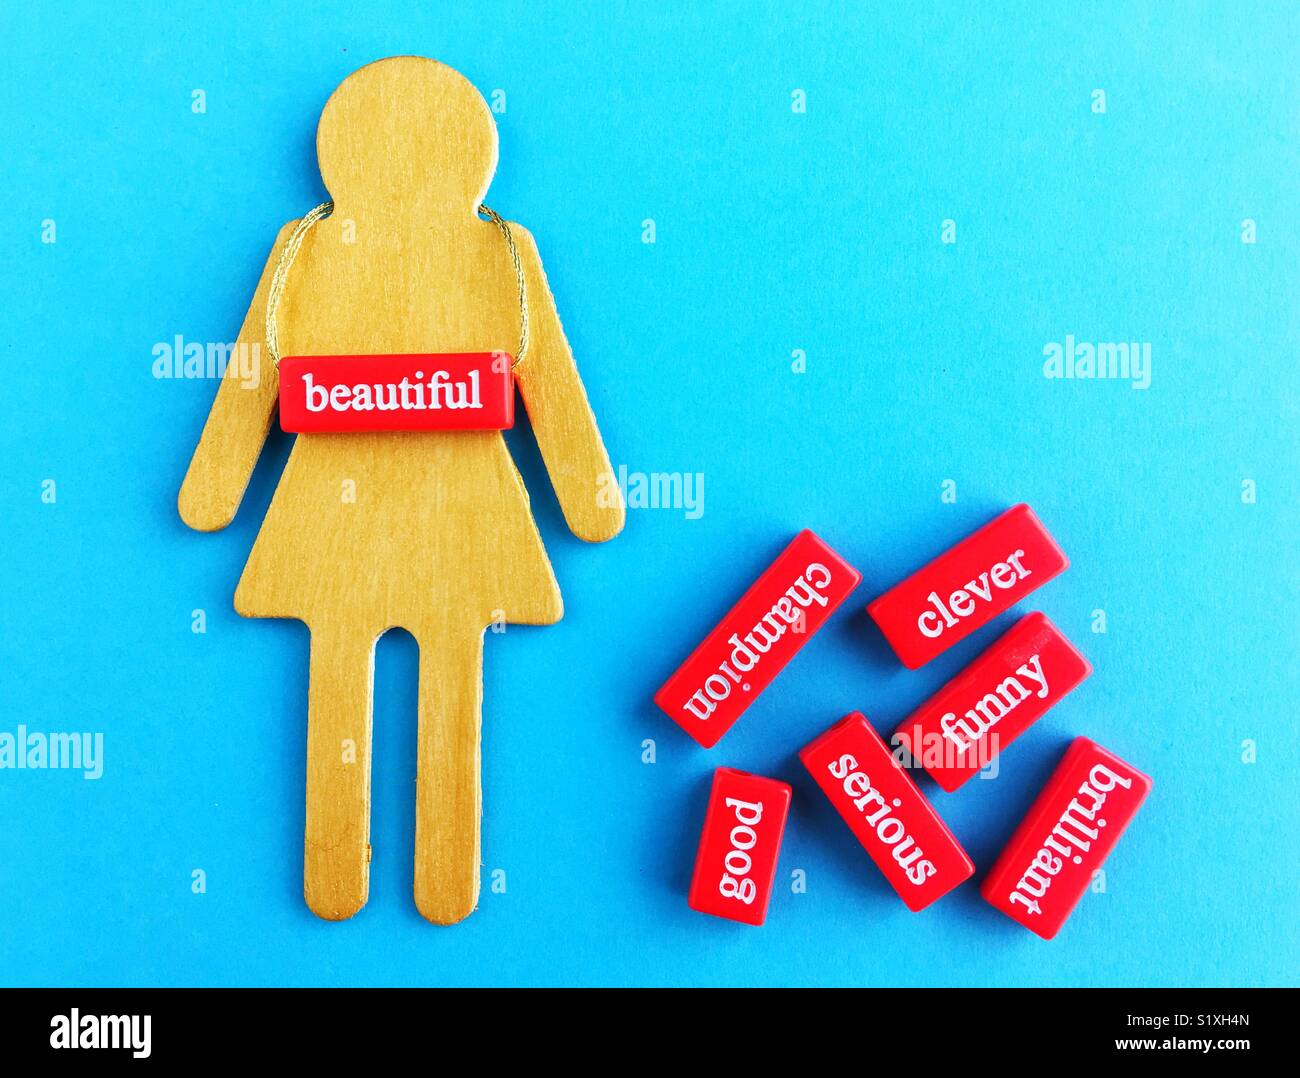 Conceptual: gender stereotypes. - Stock Image